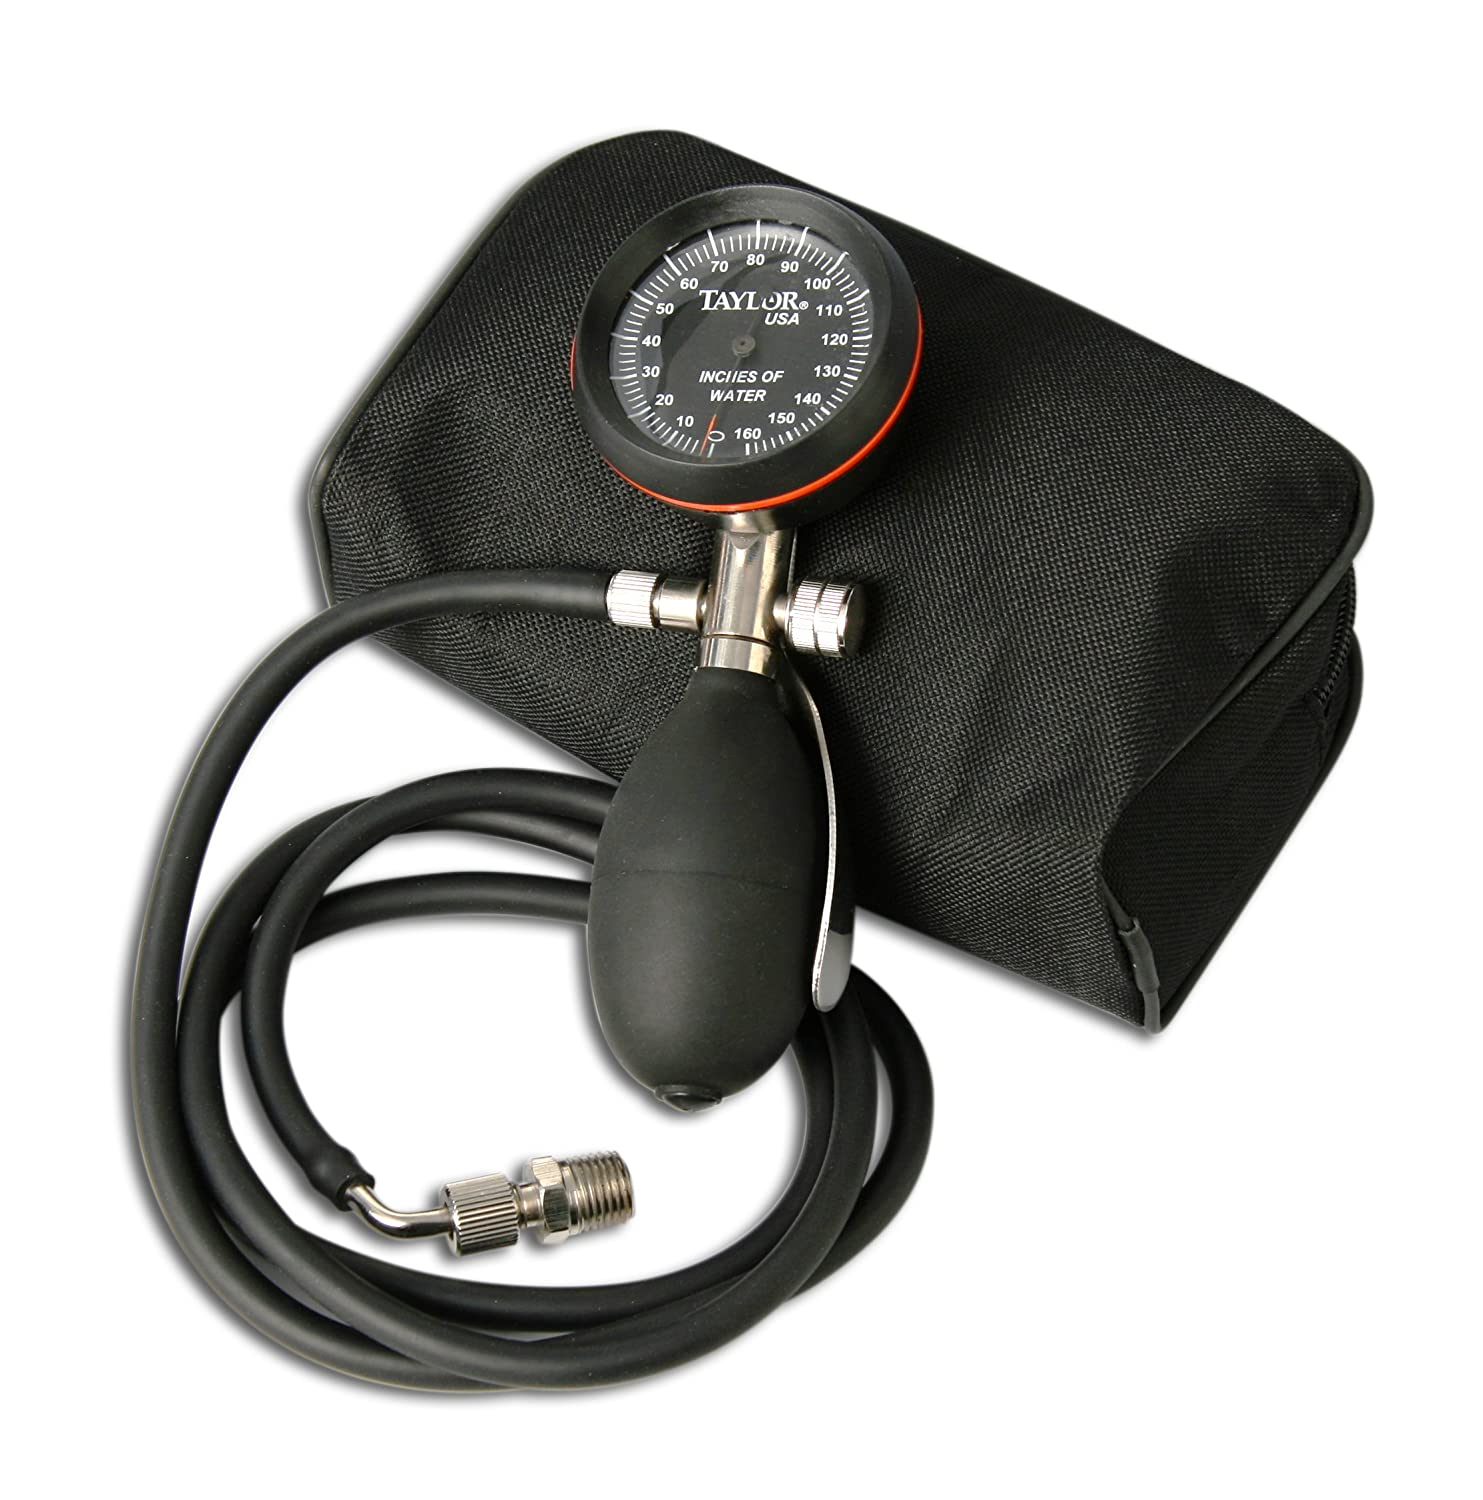 Taylor Precision Products Pressure Denver Mall Carrying with Calibrator Case Ranking TOP2